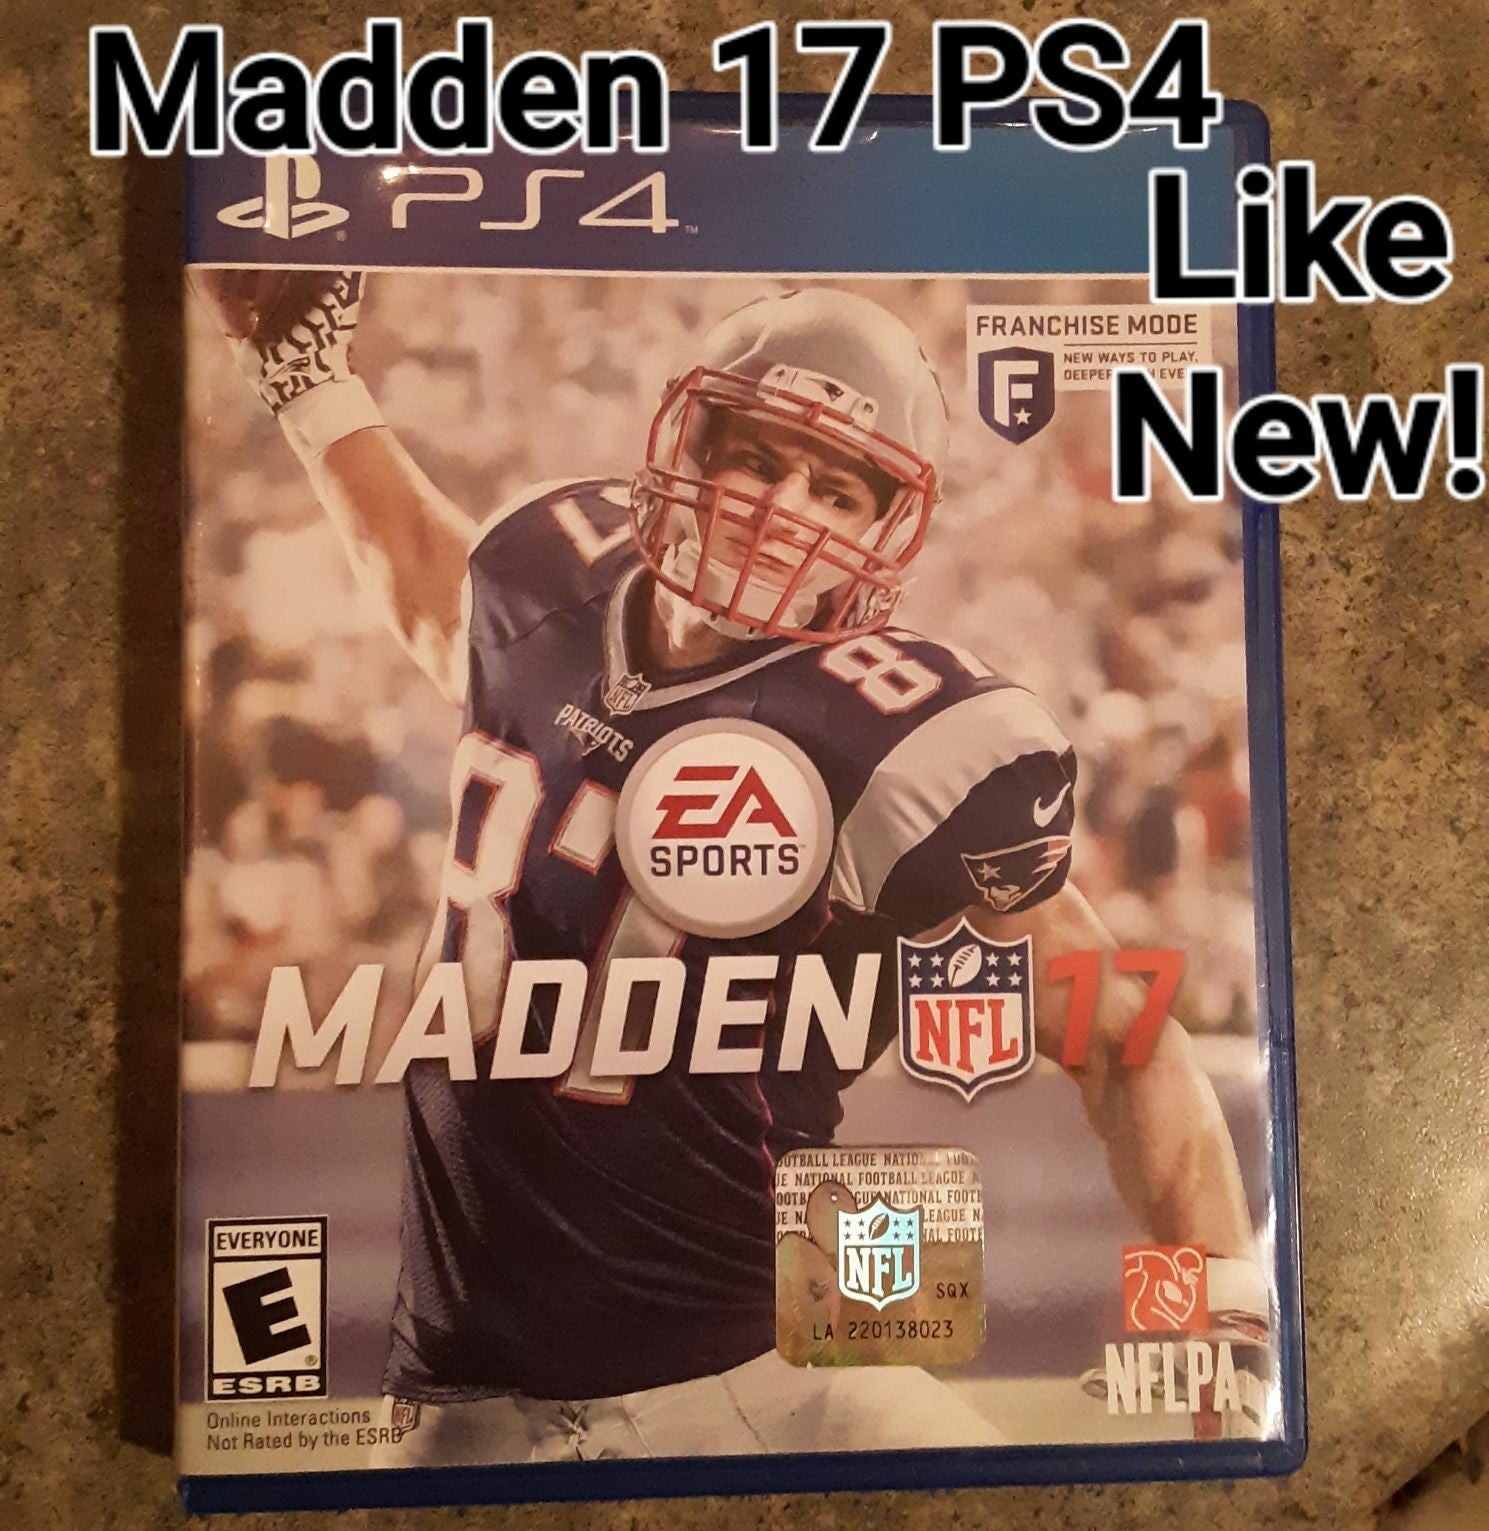 Madden 17 PS4 Video Game